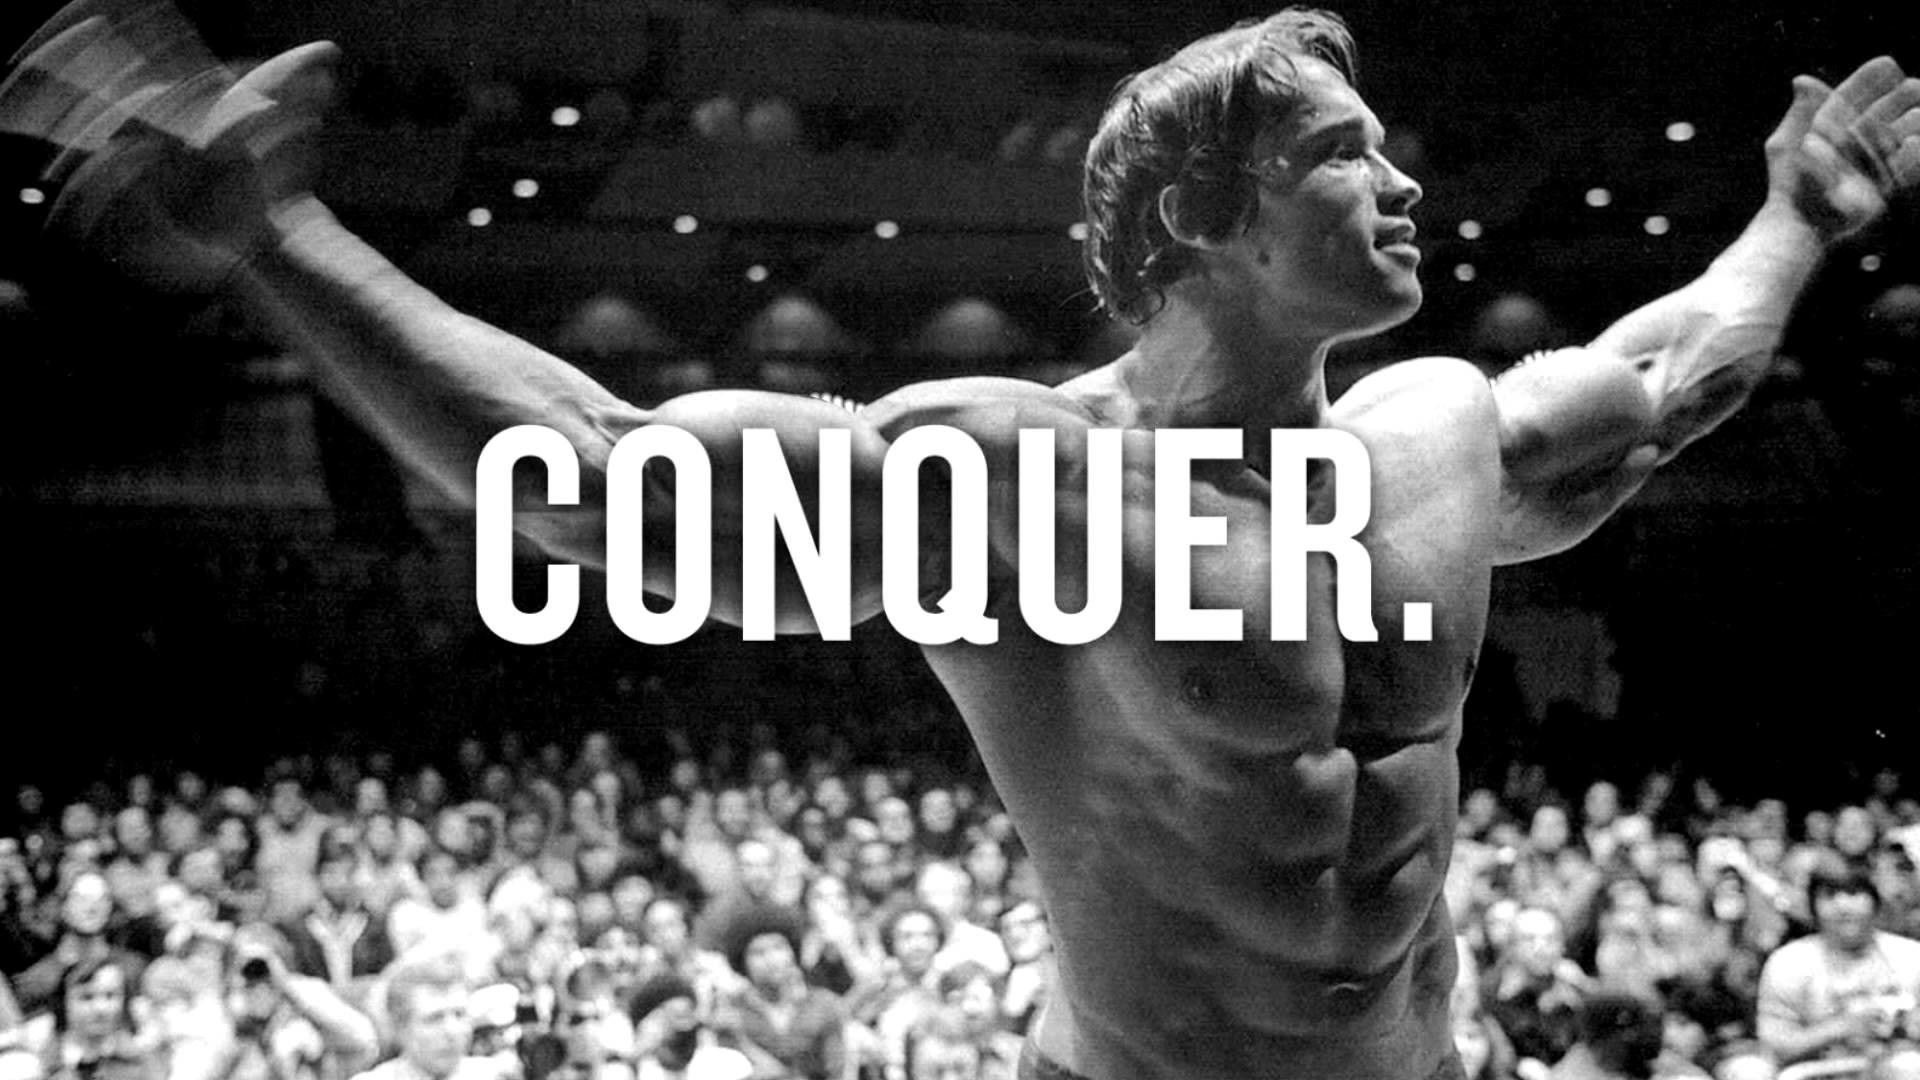 Motivational Quotes For Success In 2020 Bodybuilding Motivation Quotes Conquer Arnold Schwarzenegger Fitness Motivation Videos